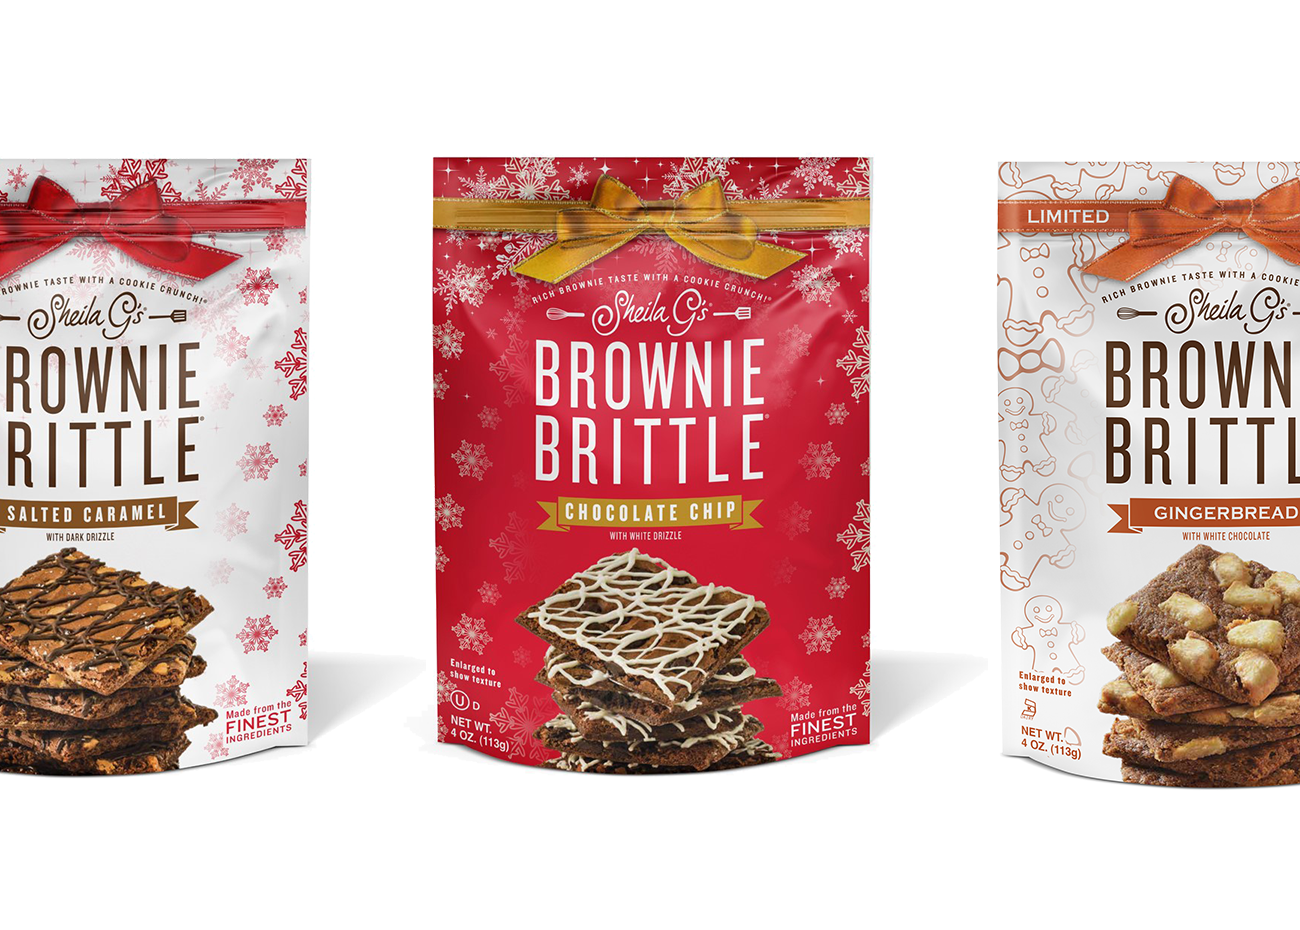 Sheila G Brownie Brittle Holiday Flavors